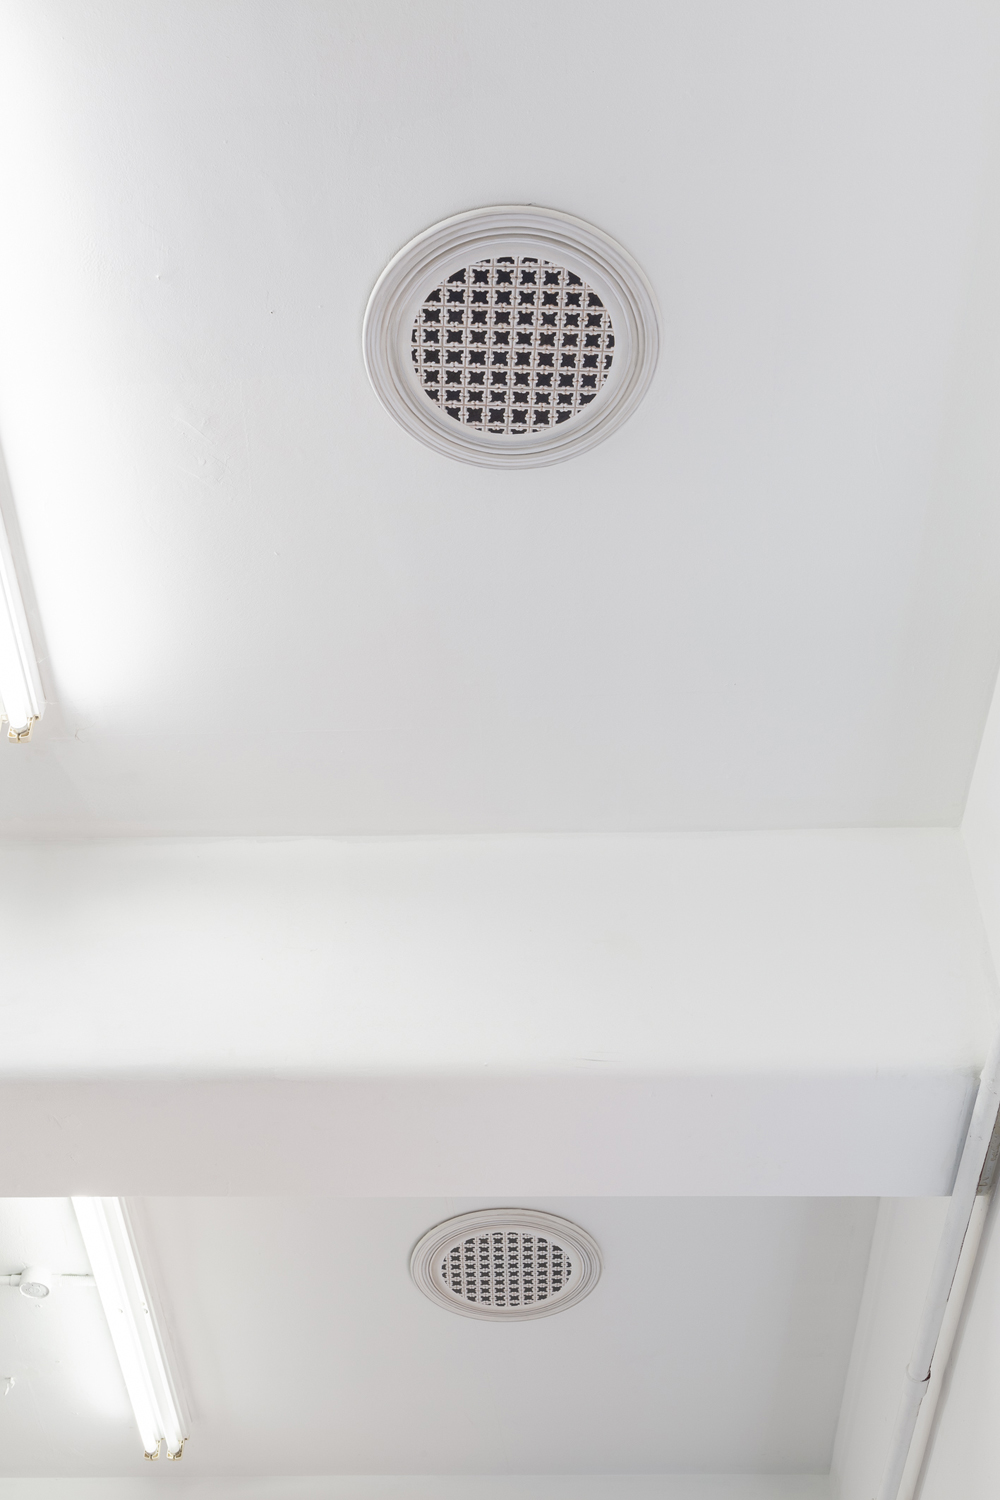 Jan Murray,  Ceiling vent (Old Police Hospital)  1 + 2,  Unseen,  BLINDSIDE 2018. Photo Christo Crocker | Courtesy the artist